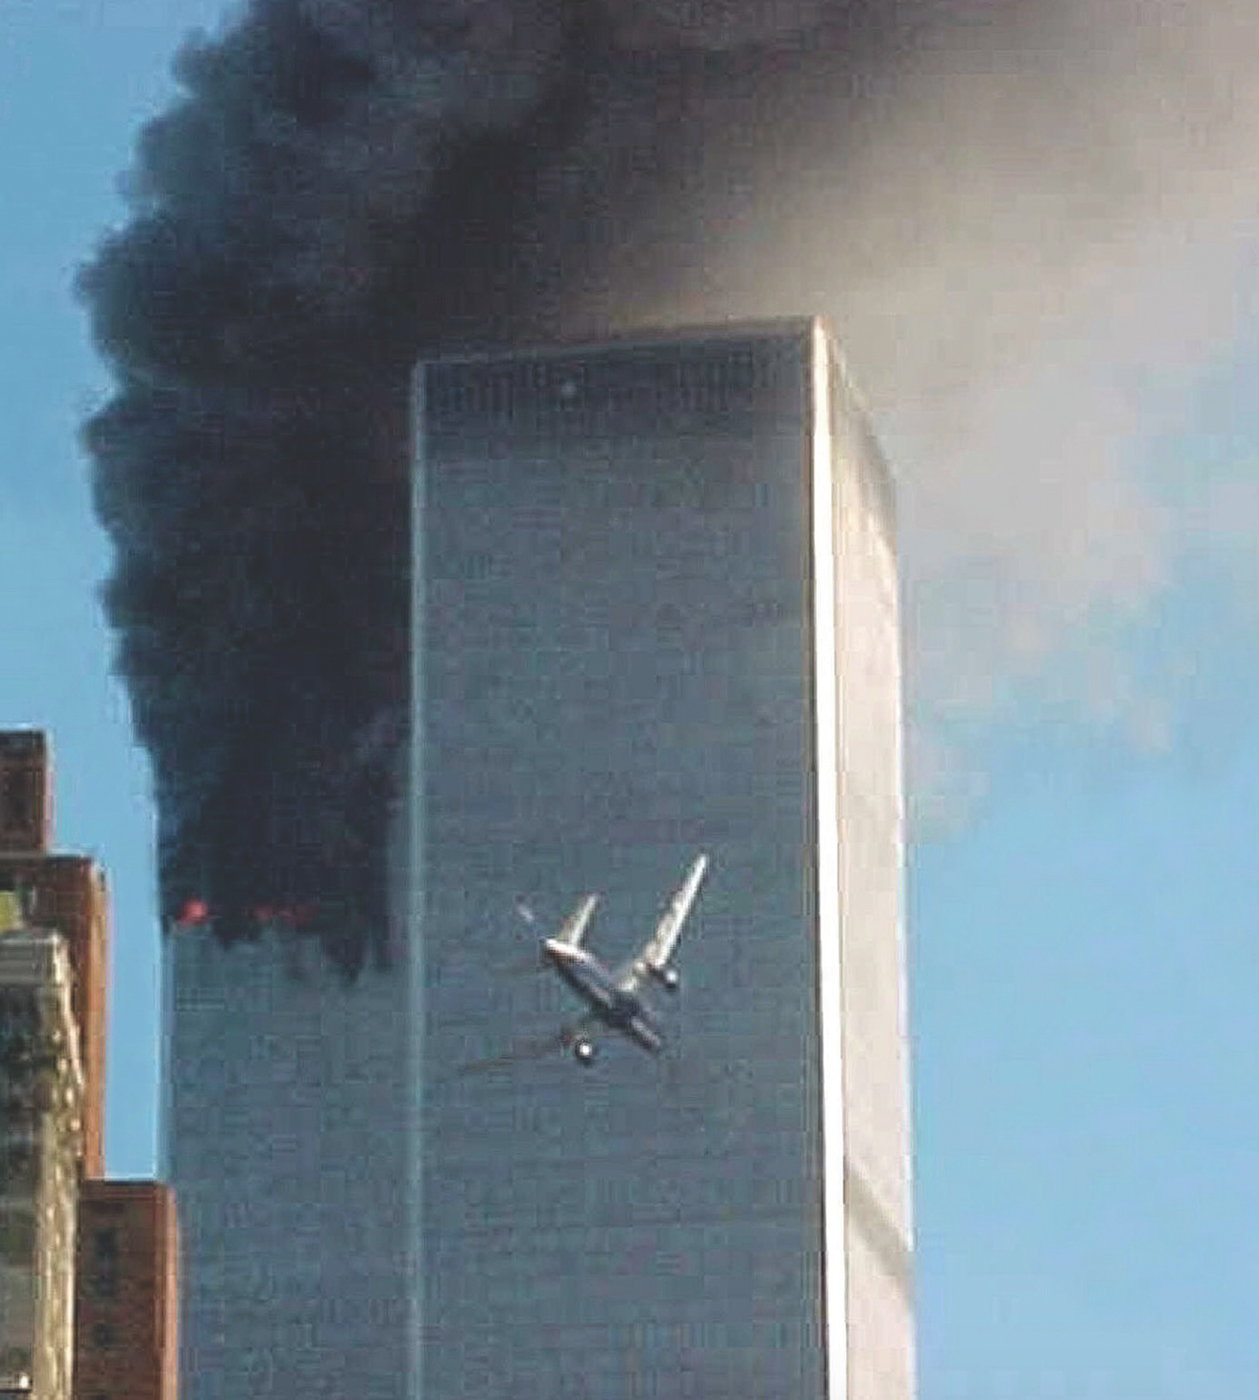 The second hijacked airplane moments before it crashes into the south tower of the World Trade Center at 9:03 a.m. AP Photo.